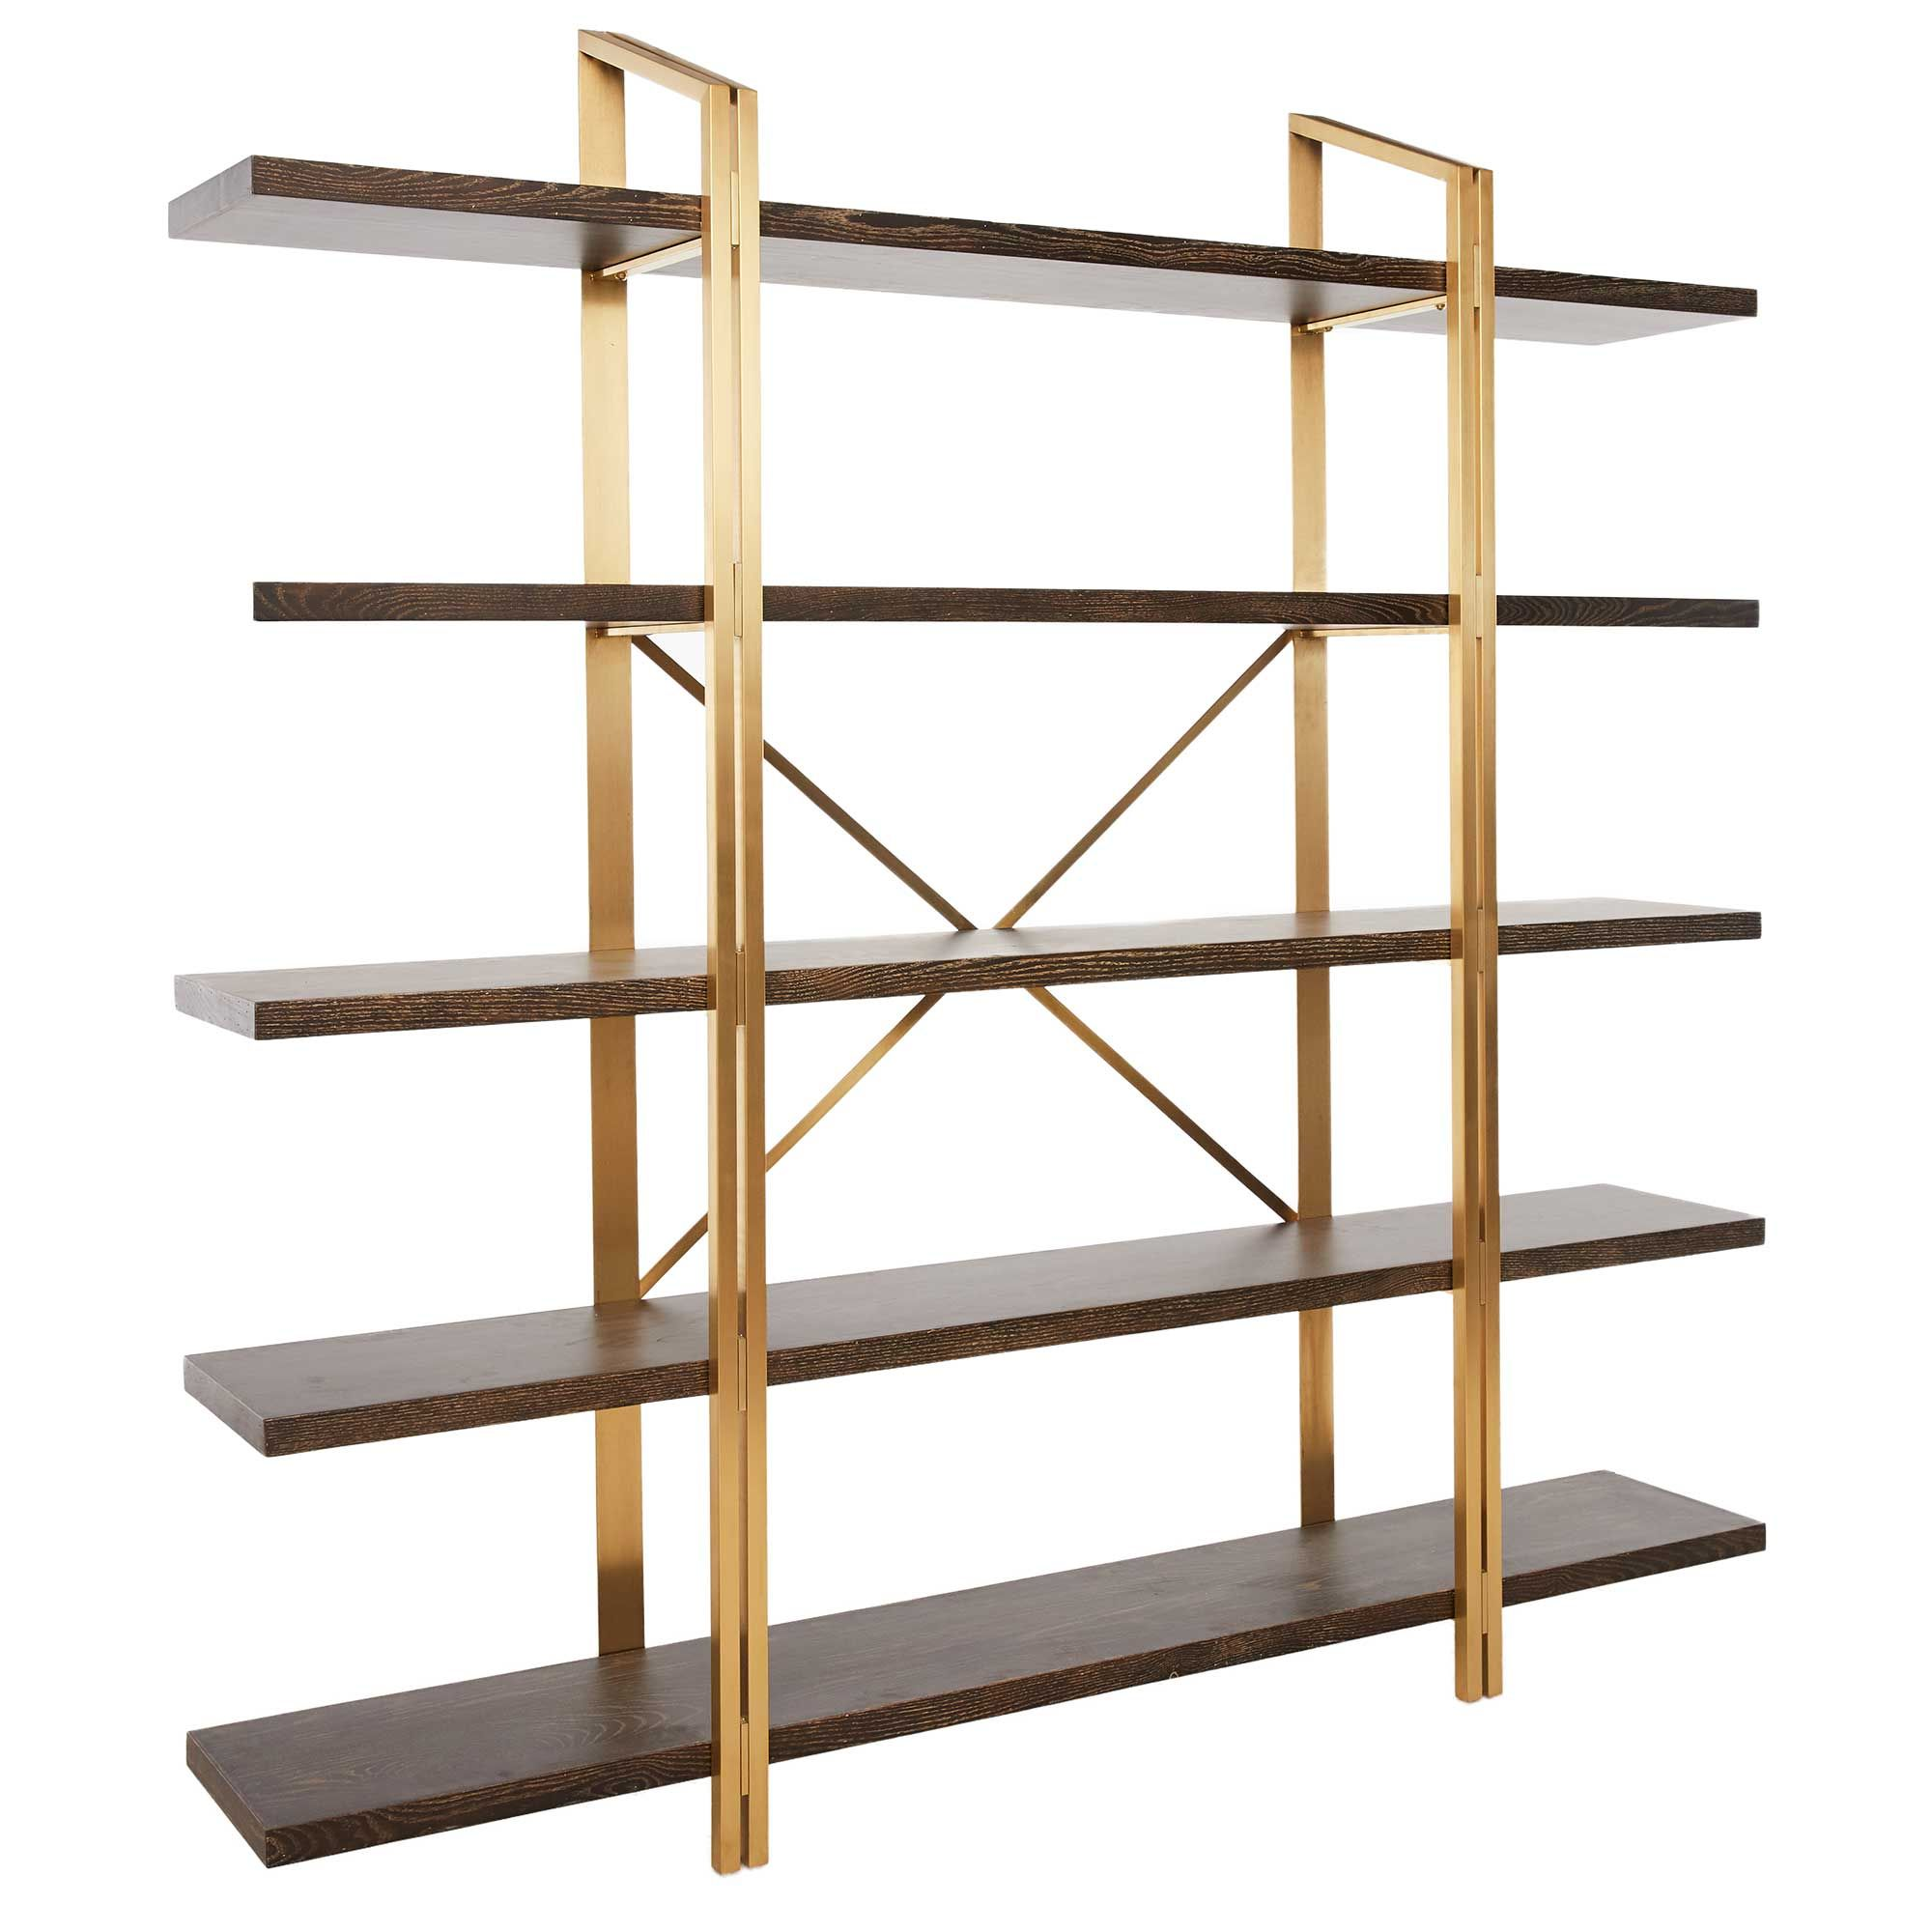 Crafted from stainless steel with an oak veneer, the Maximillion shelf offers a modern alternative to your traditional bookcase.